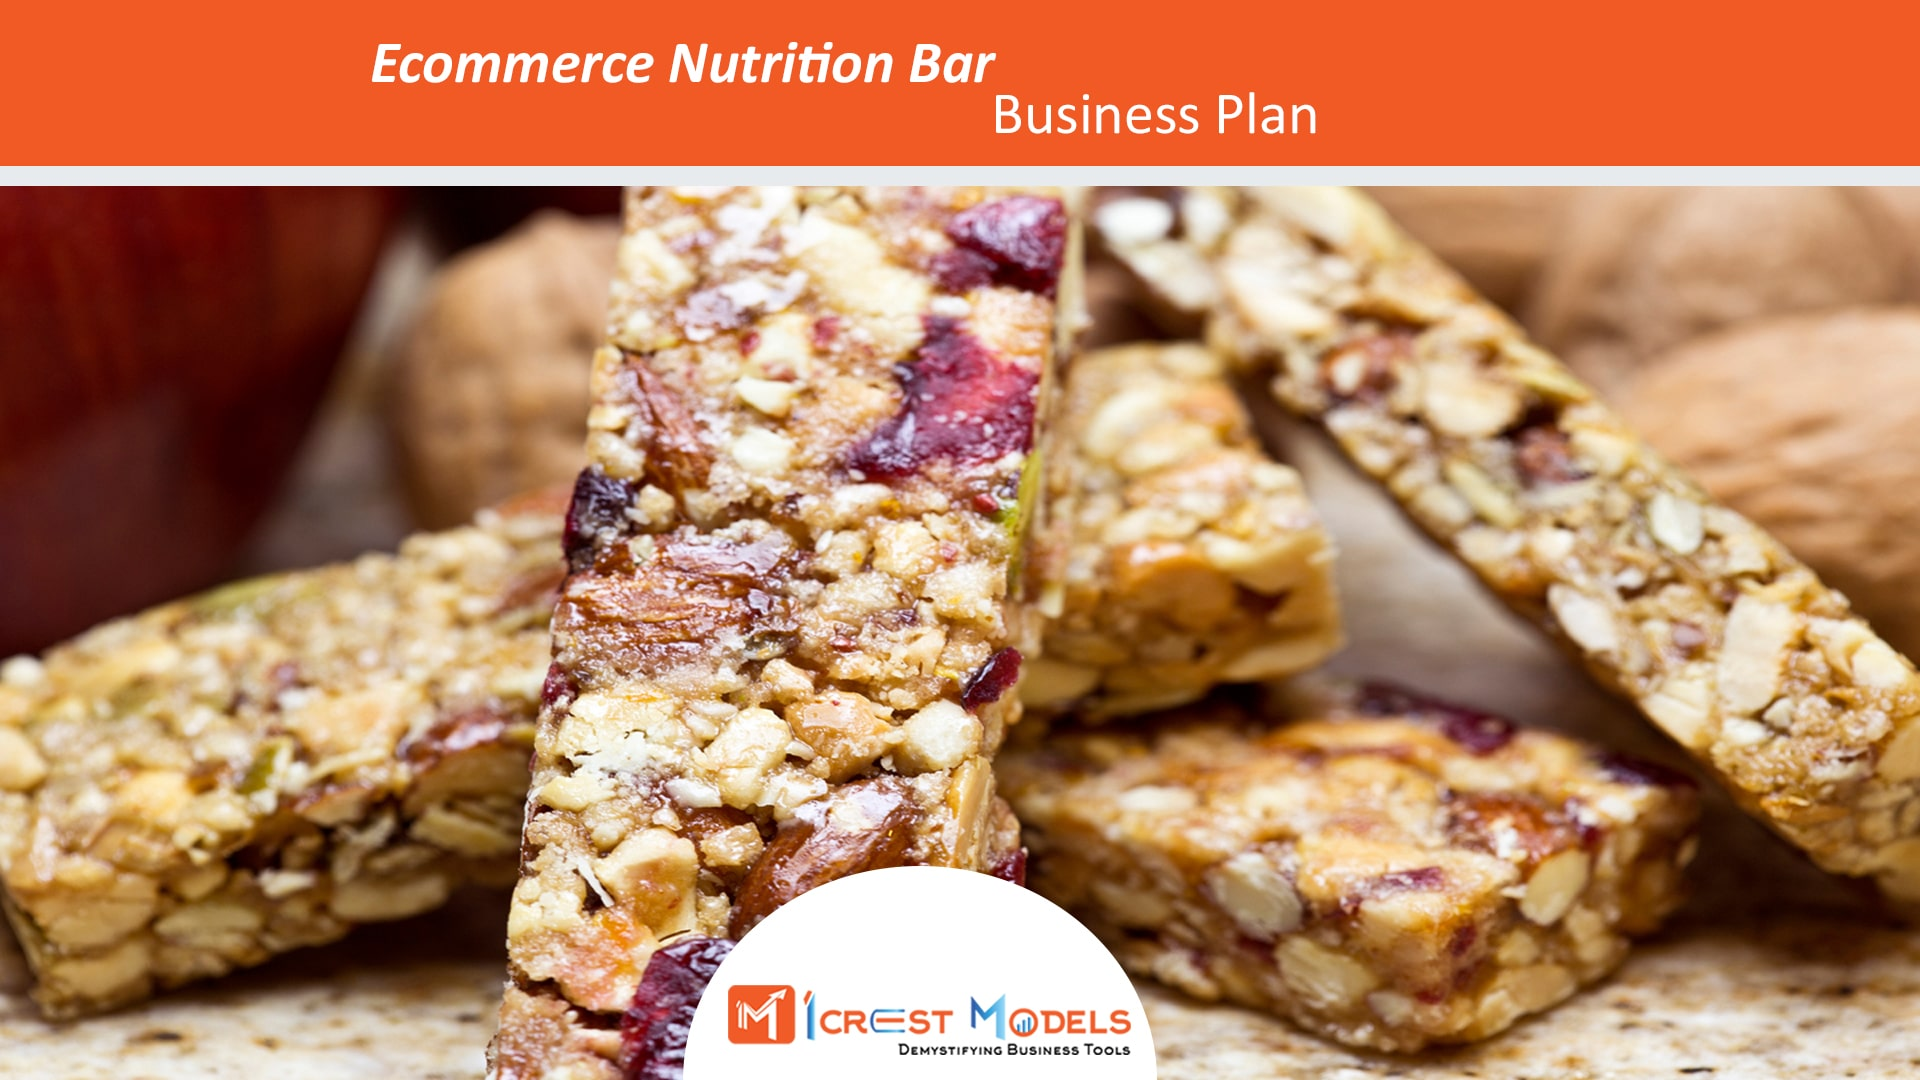 Business Plan of an Online Nutrition Bar Business